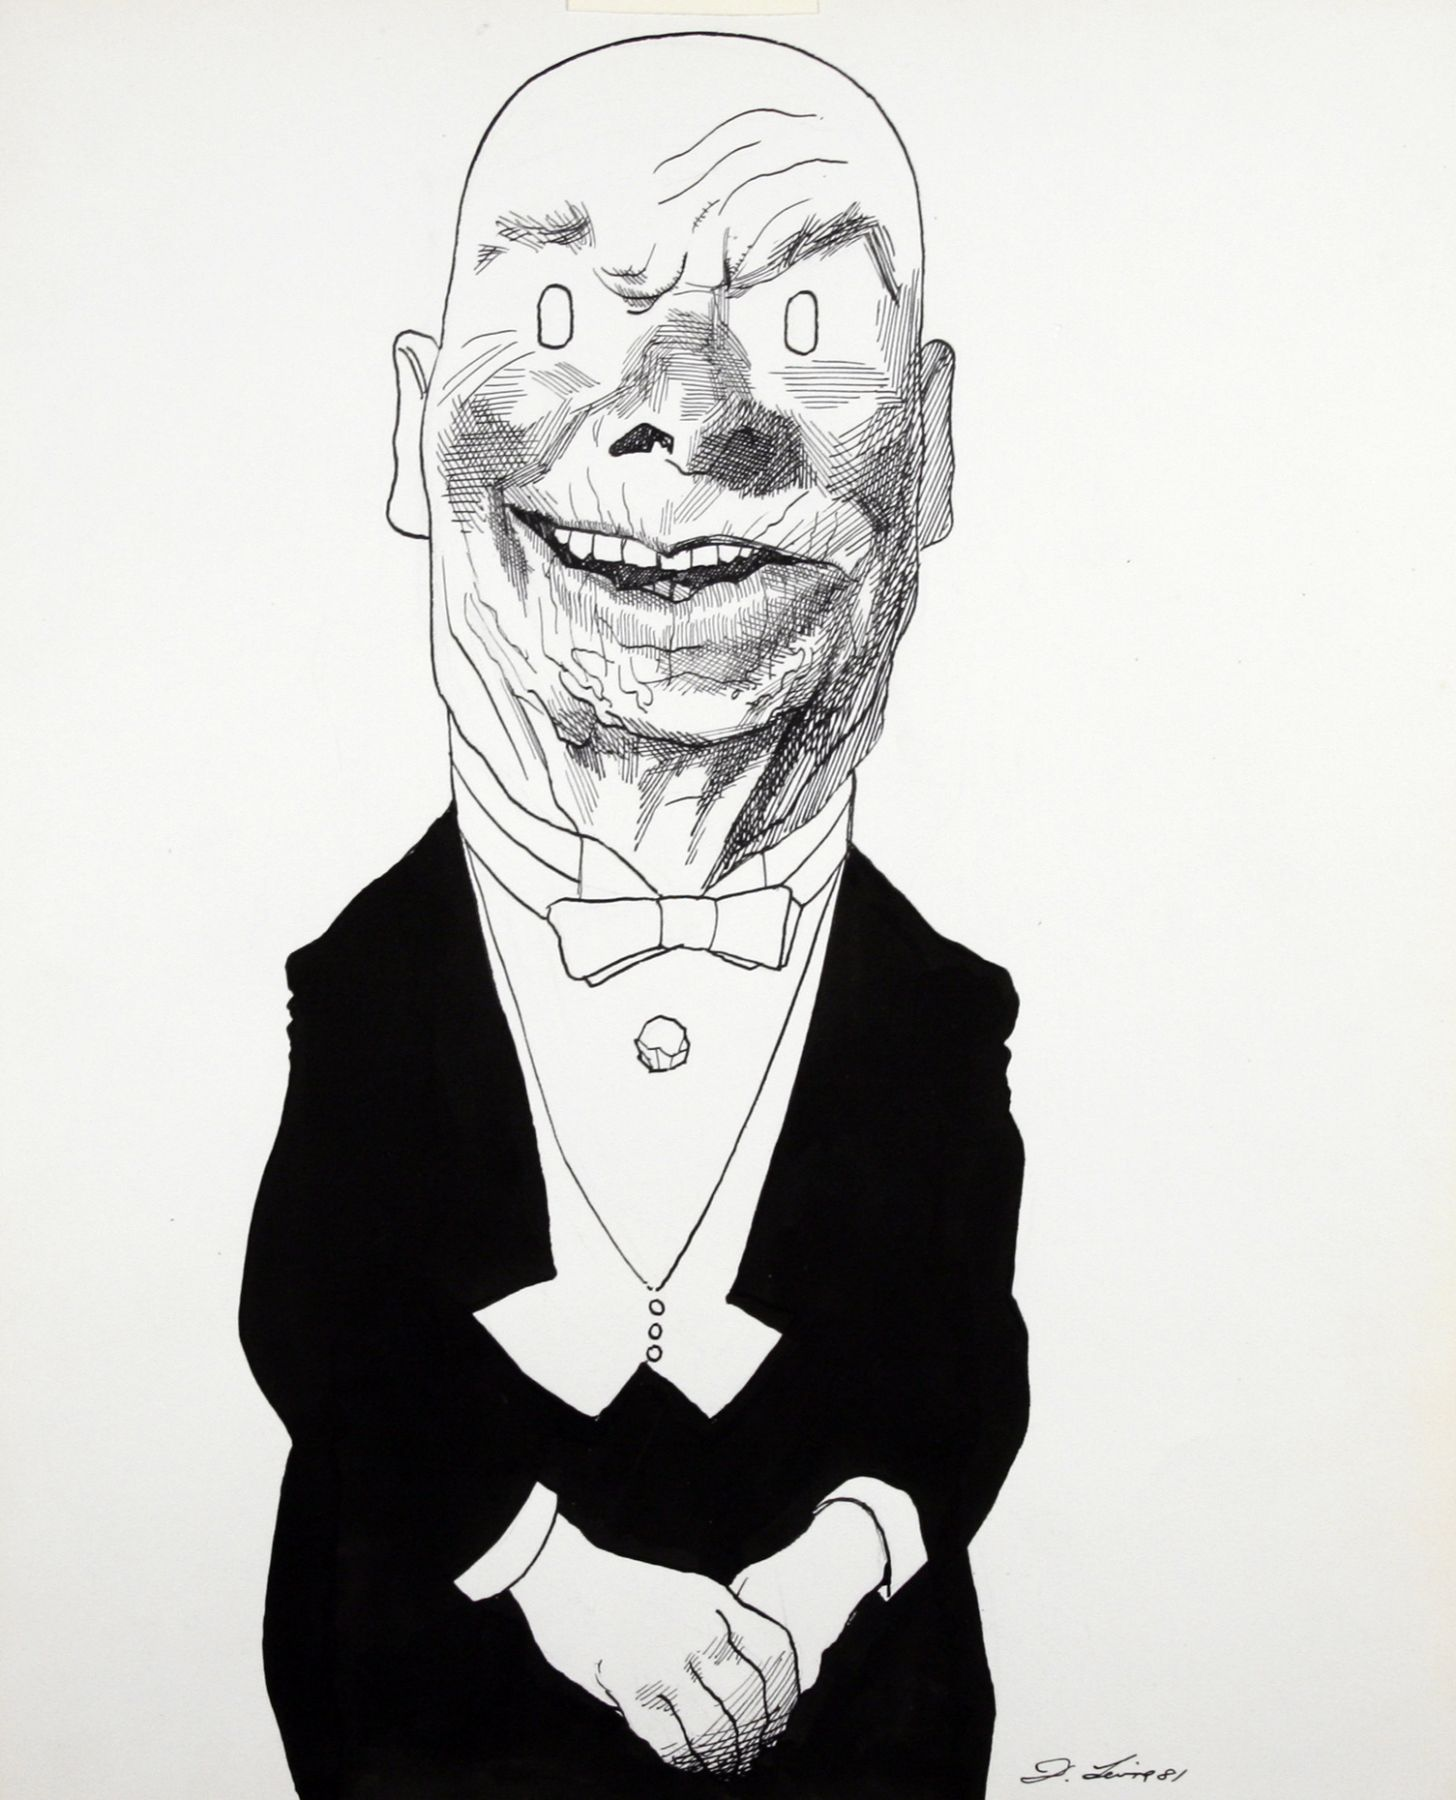 David Levine, Daddy Warbucks Reagan, 1981, ink on paper, 13 1/2 x 11 inches